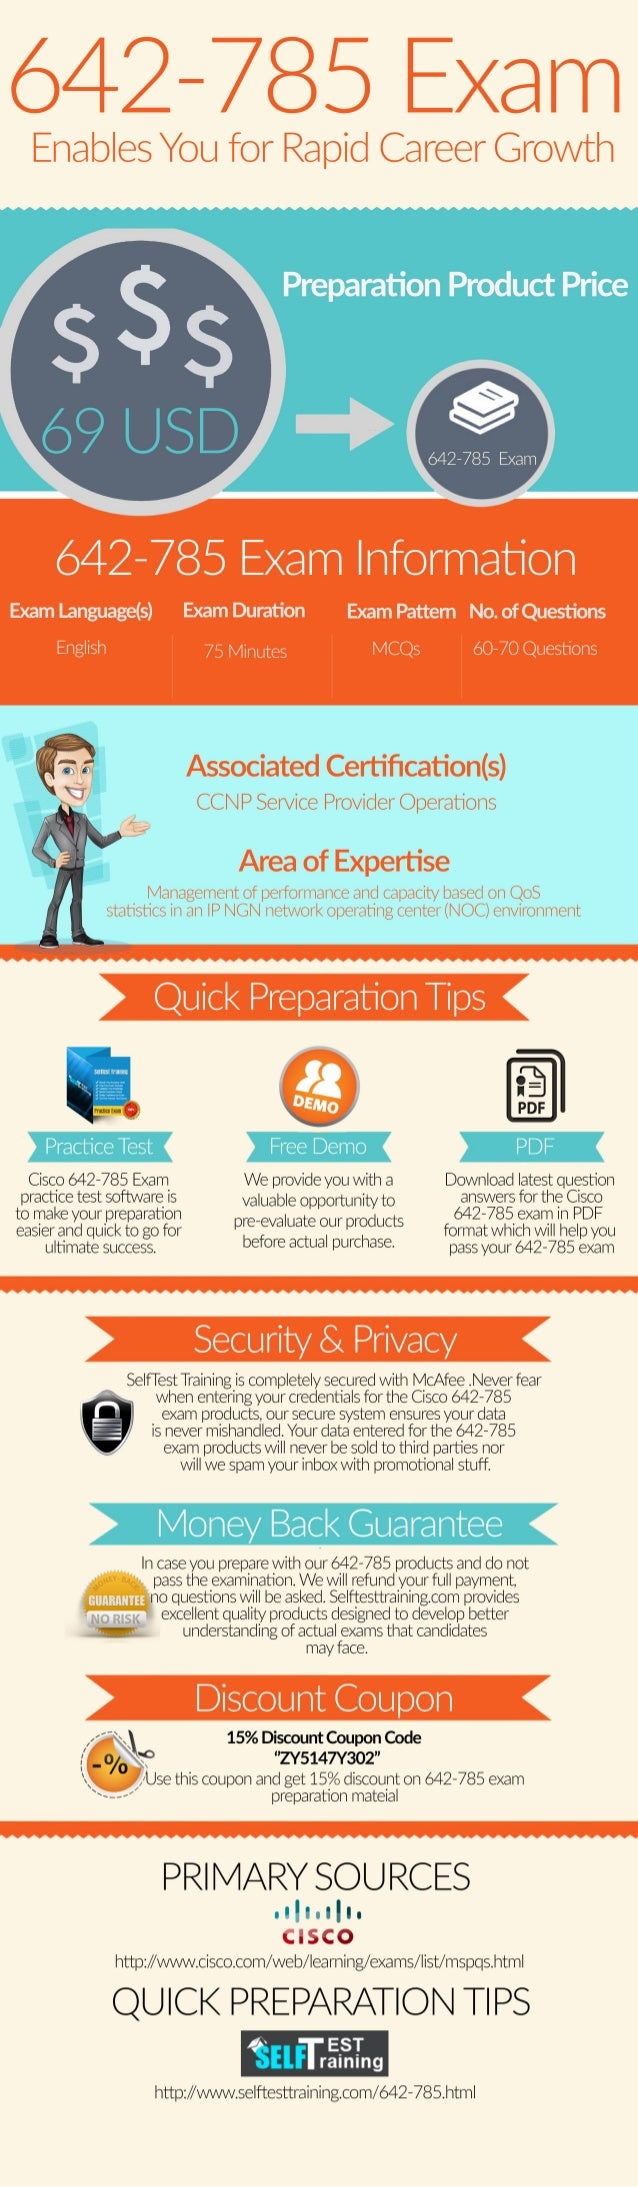 Get 642-785 exam questions & 642-785 practice tests [Infographic]